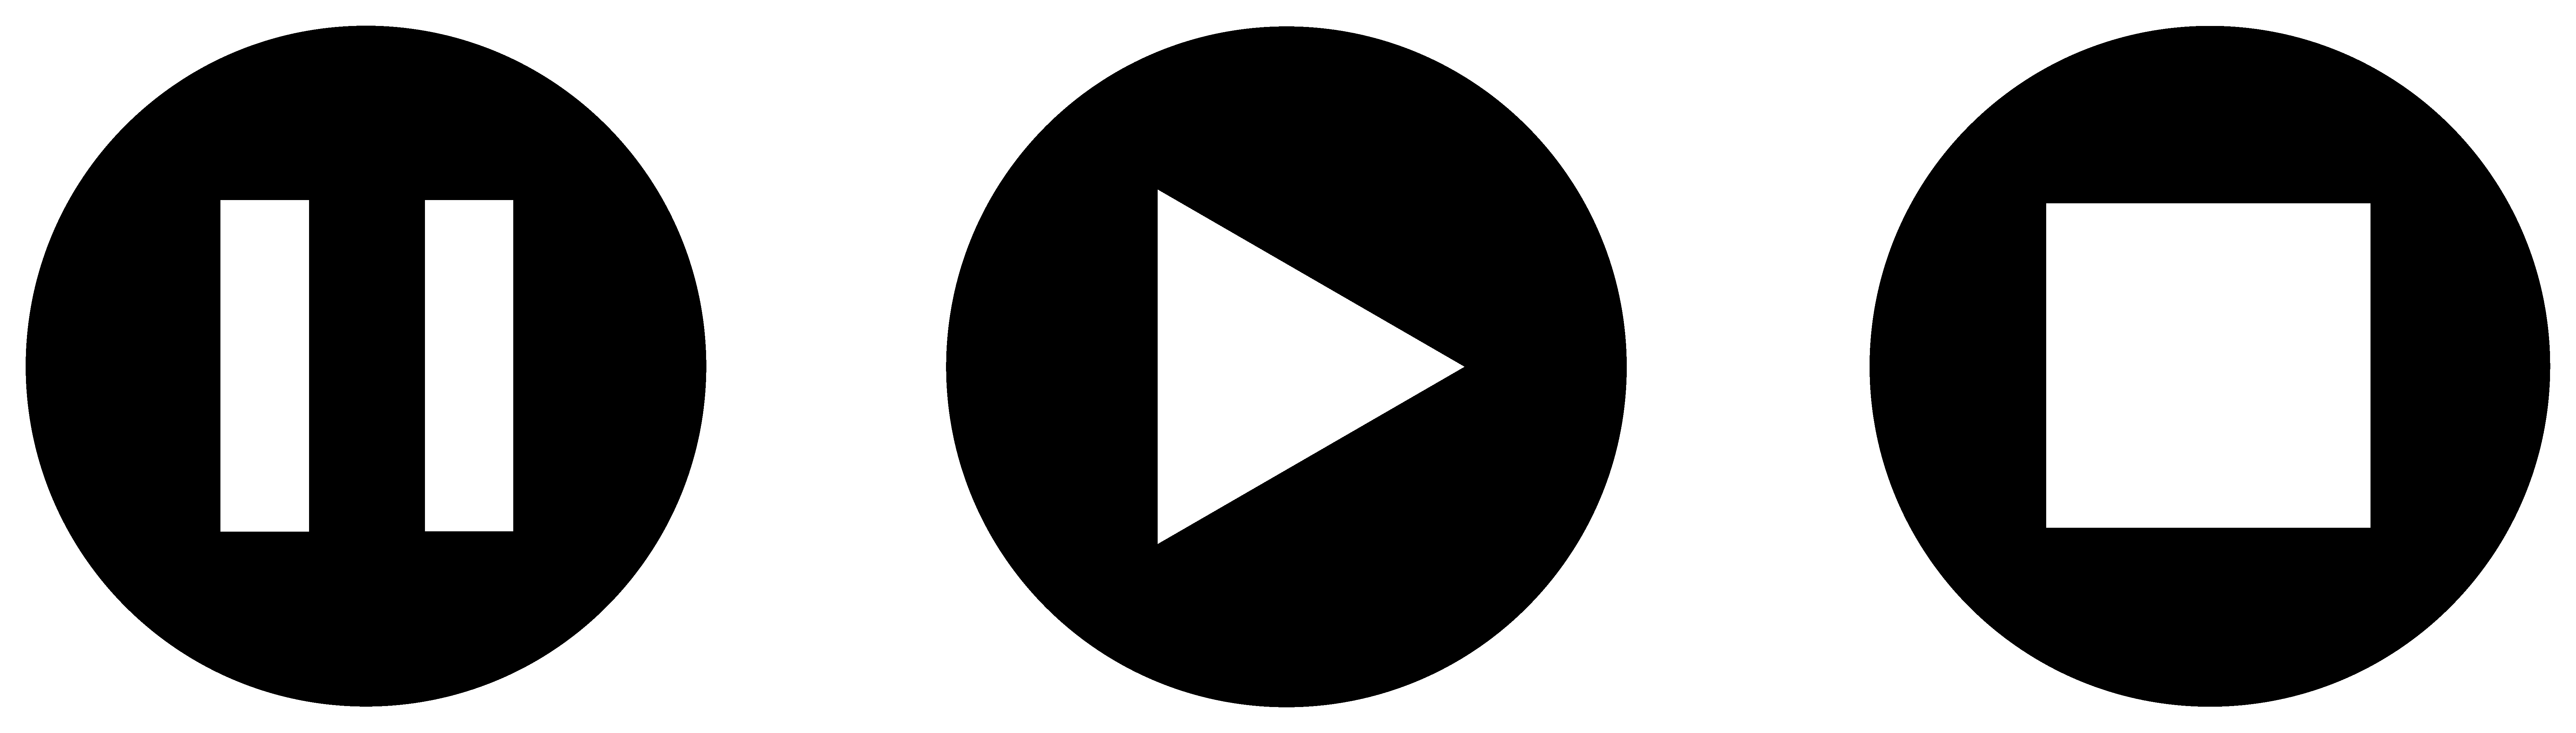 Play pause png. Button transparent pictures free